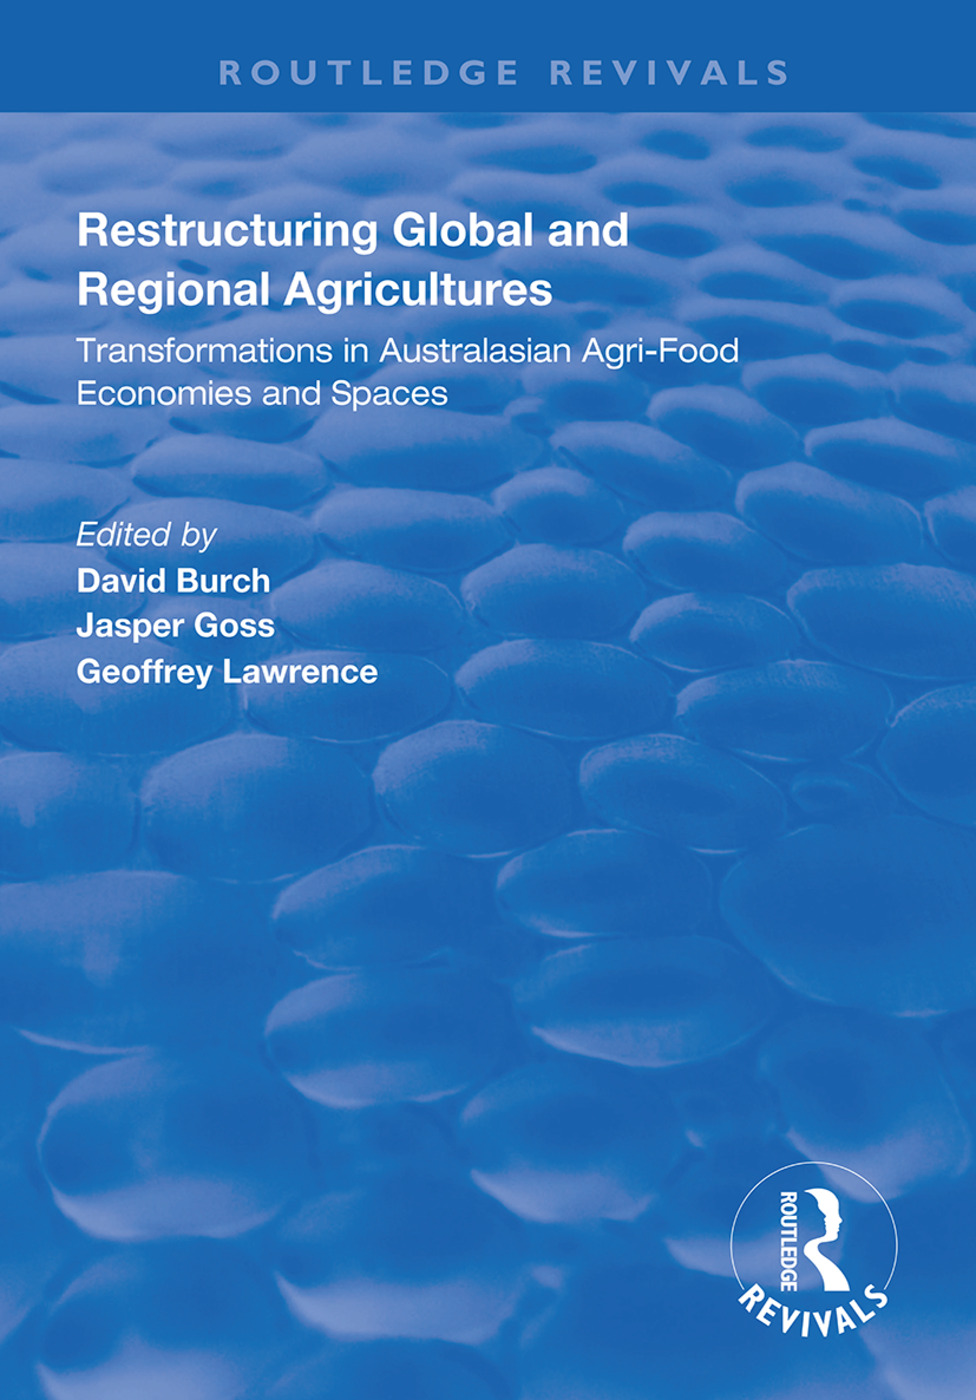 Restructuring Global and Regional Agricultures: Transformations in Australasian Agri-Food Economies and Spaces, 1st Edition (Hardback) book cover